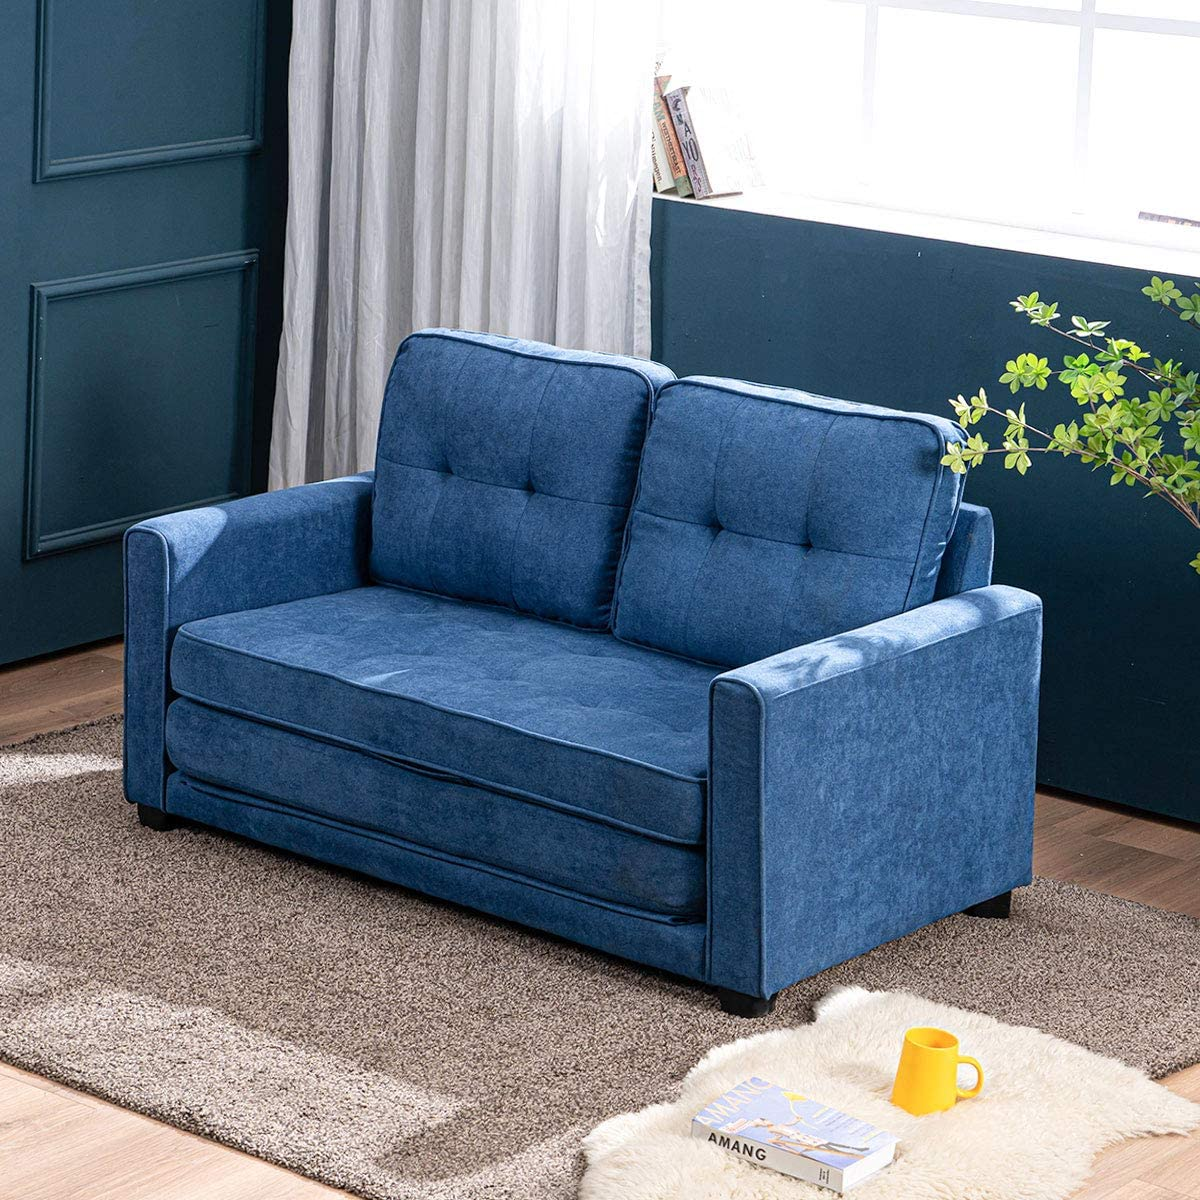 MELLCOM Modern Selling and selling Sofa Bed Beauty products Upholstered Mid-Century Fabric Loveseat